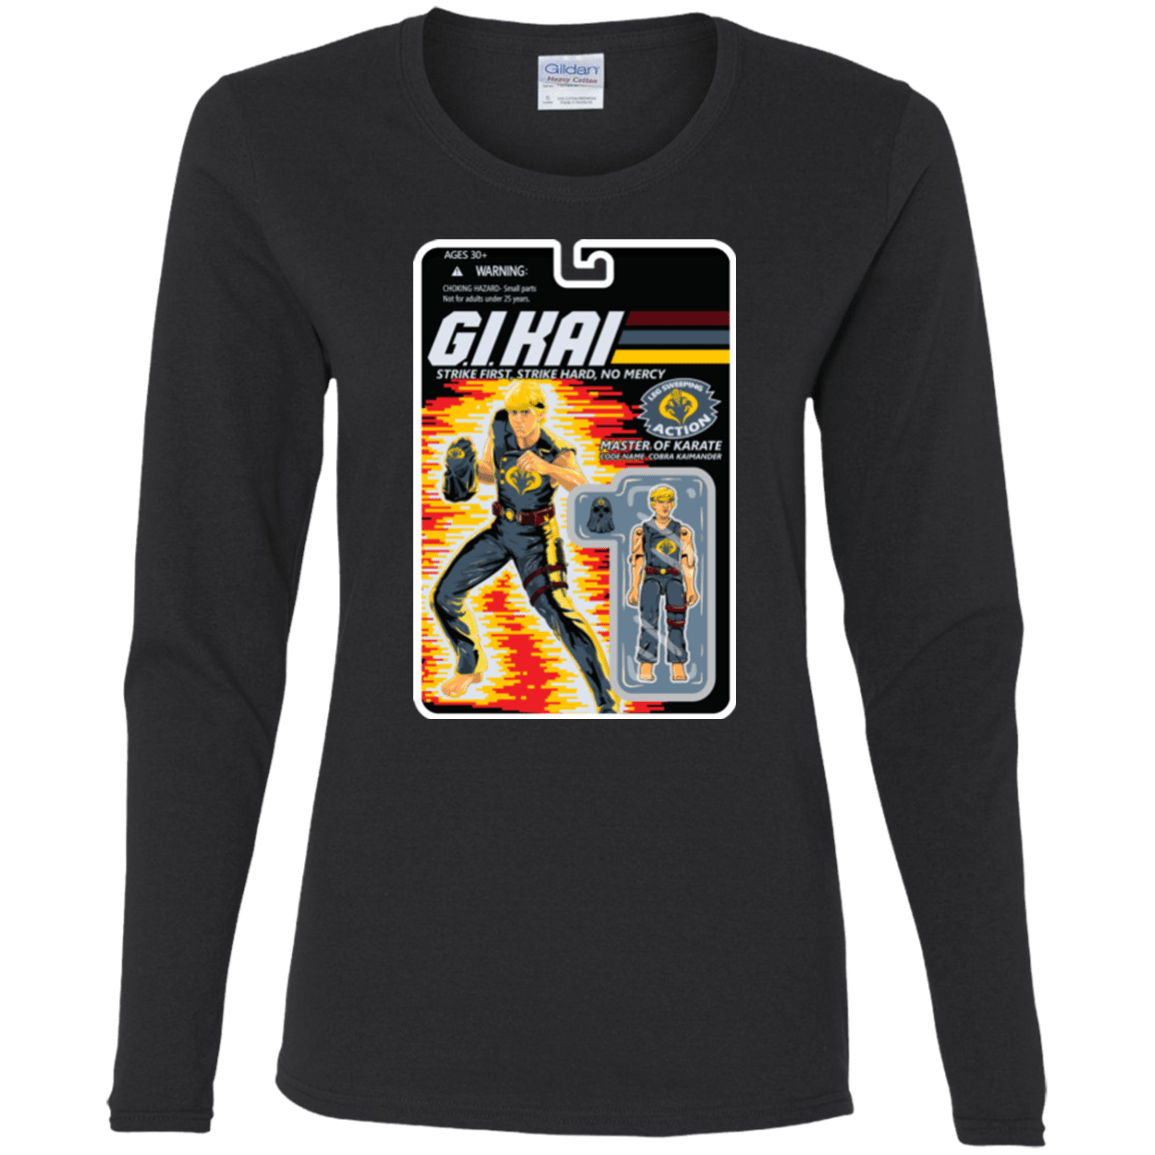 T-Shirts Black / S GI KAI Women's Long Sleeve T-Shirt